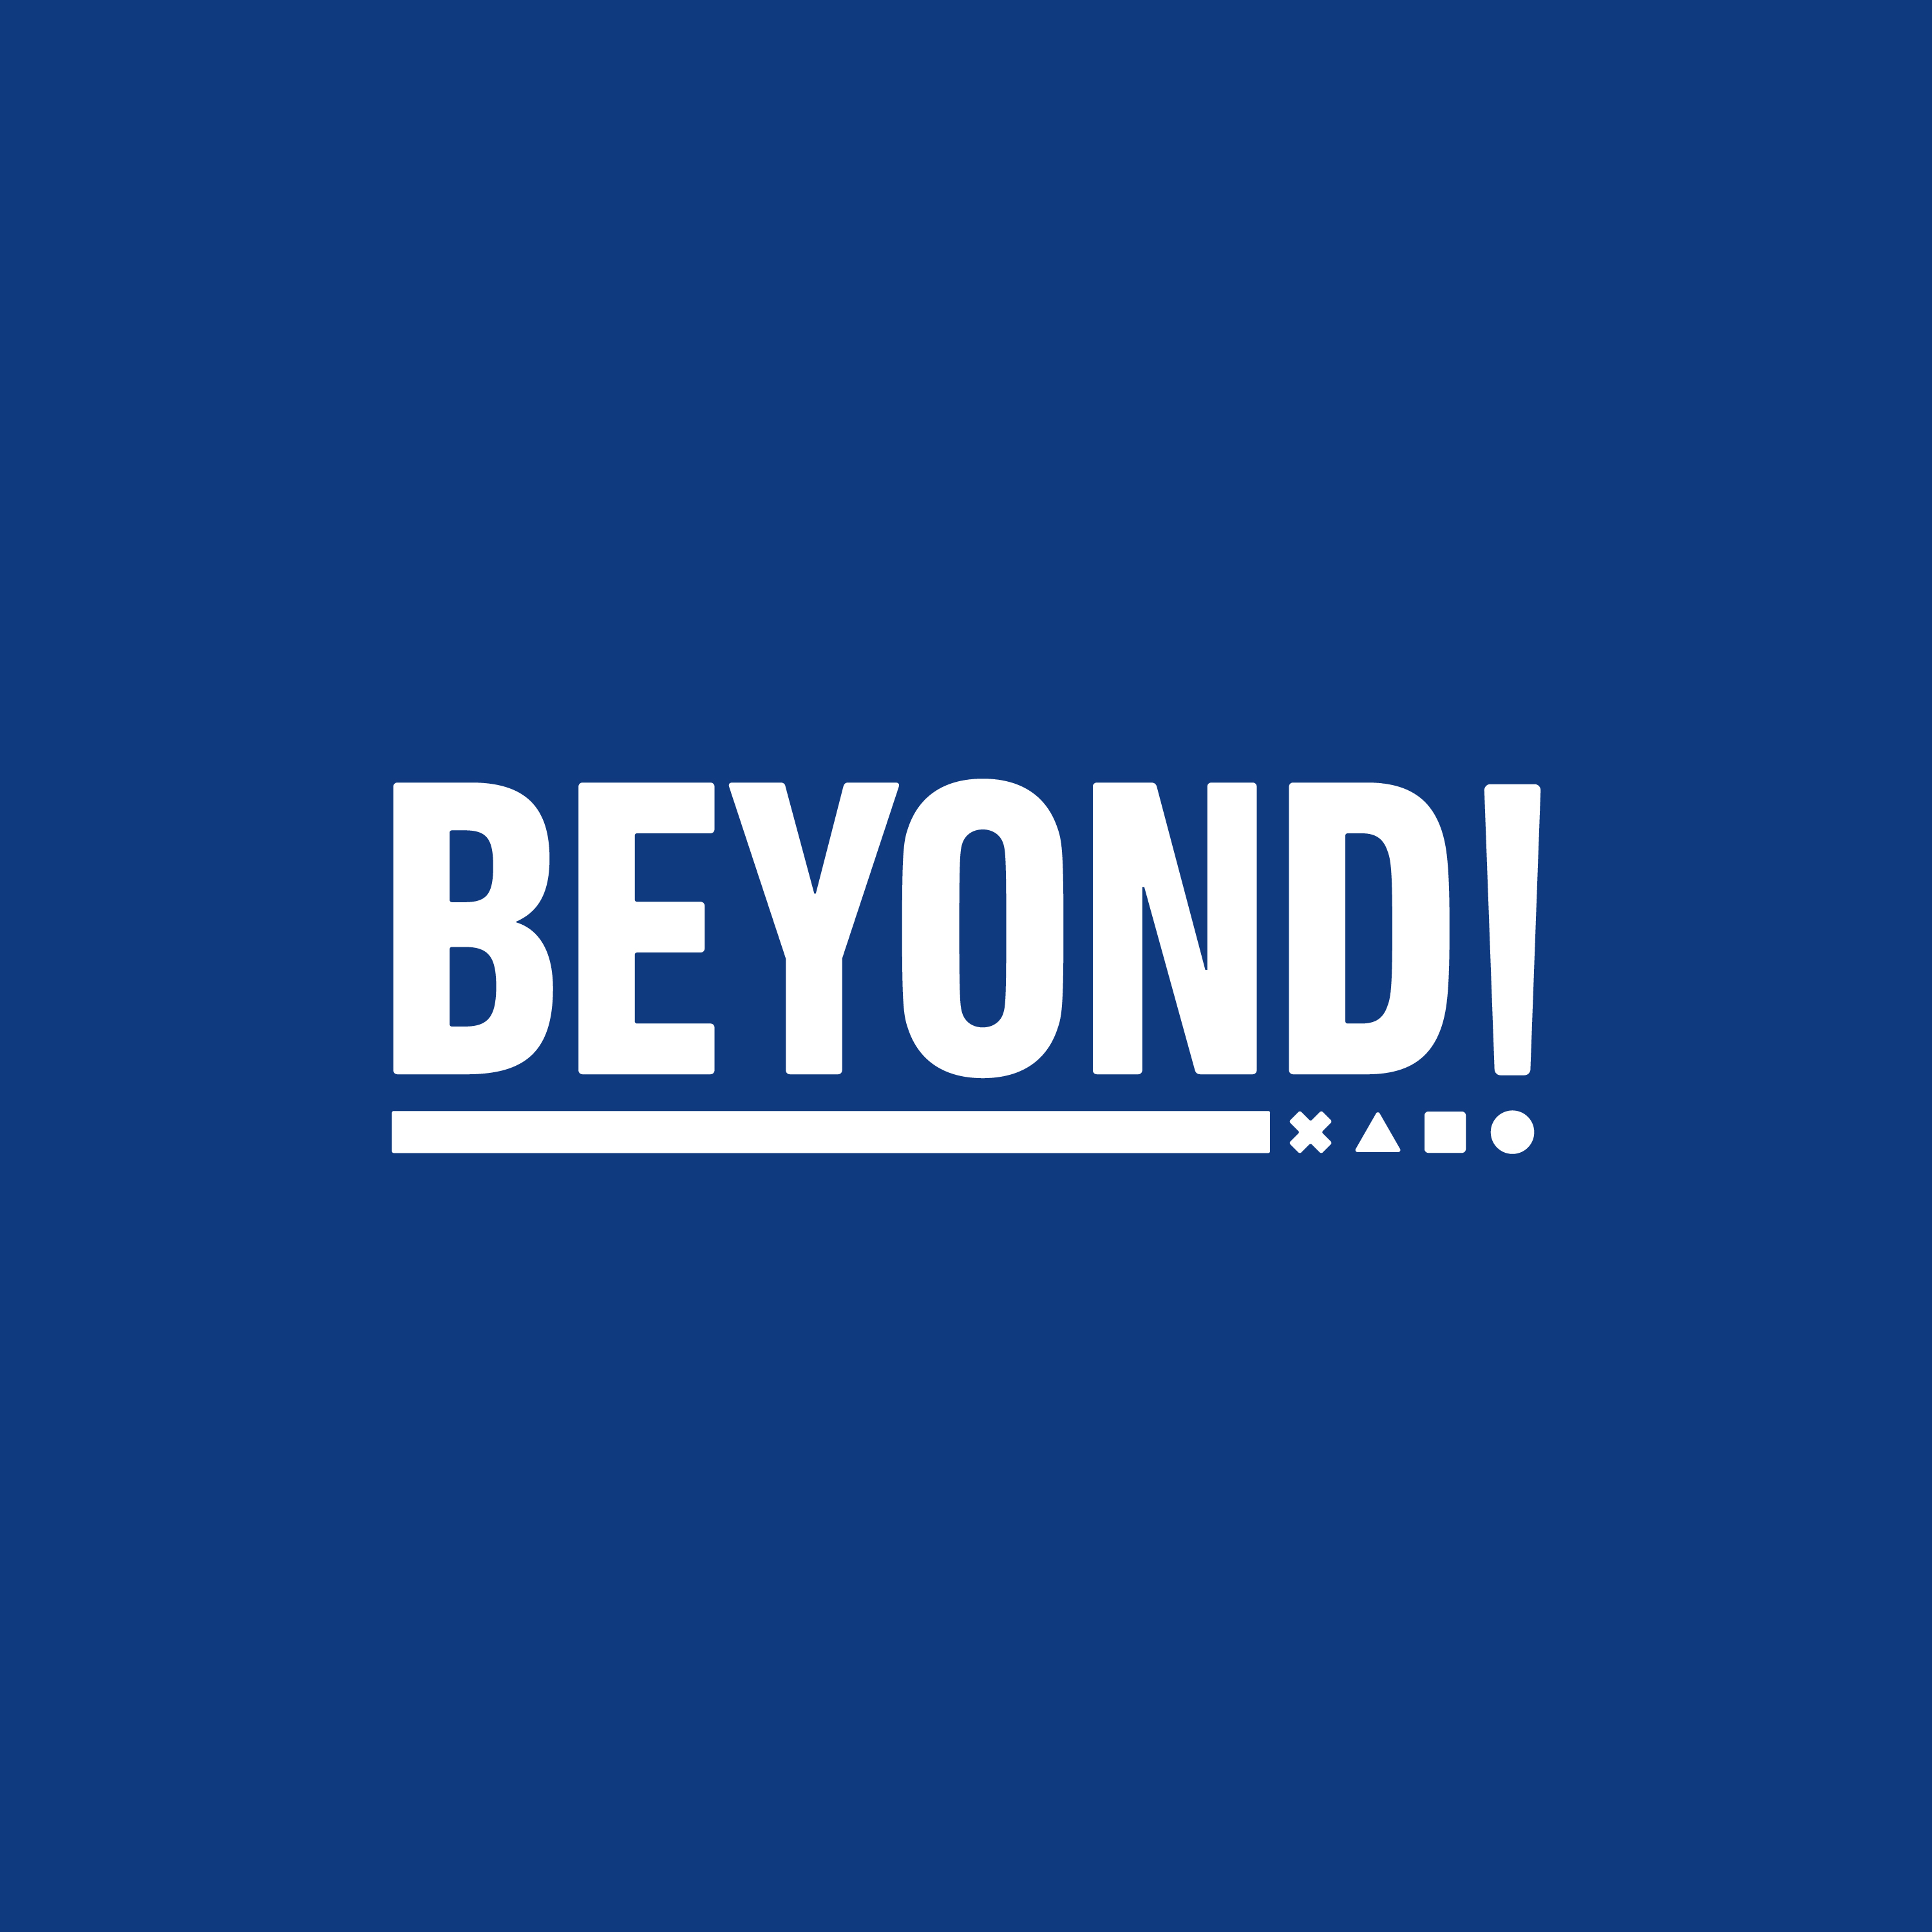 Why PlayStation's Latest Acquisition Makes So Much Sense - Beyond Episode 707